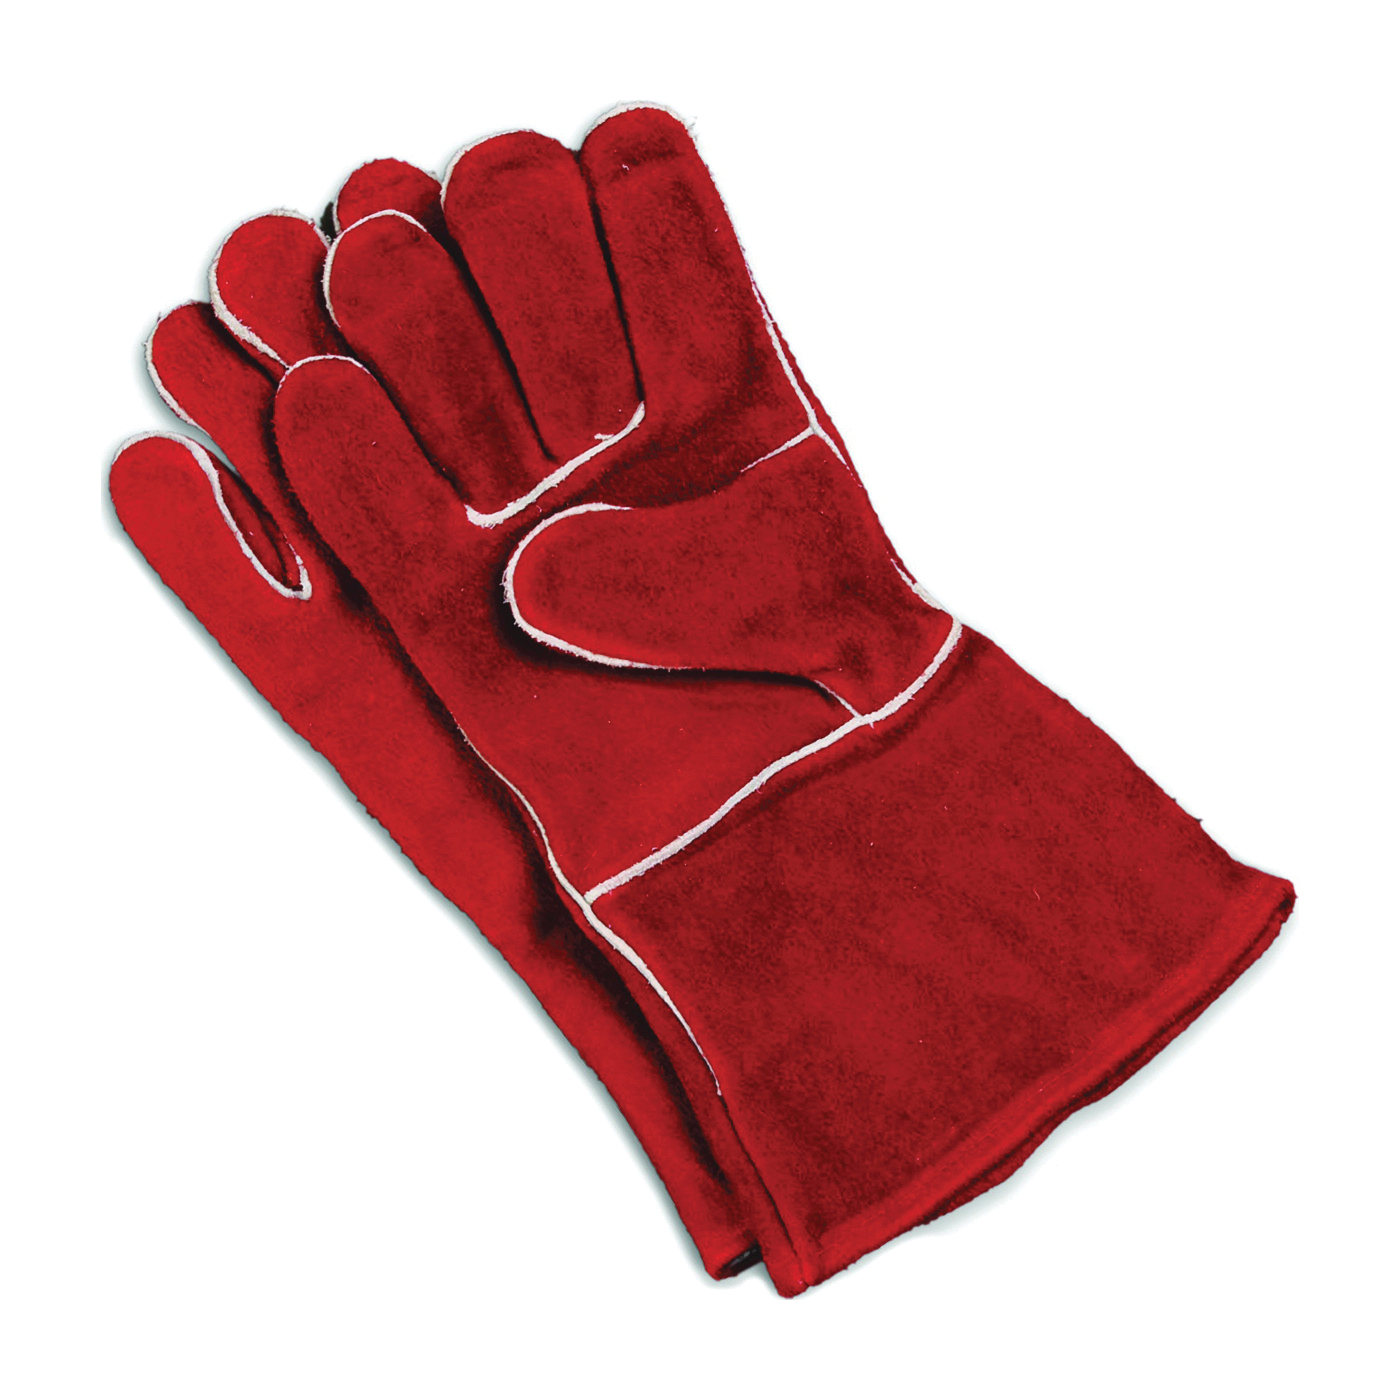 Picture of Imperial KK0159 Fireplace Gloves, Cowhide Leather Lining, Cowhide Leather, Red